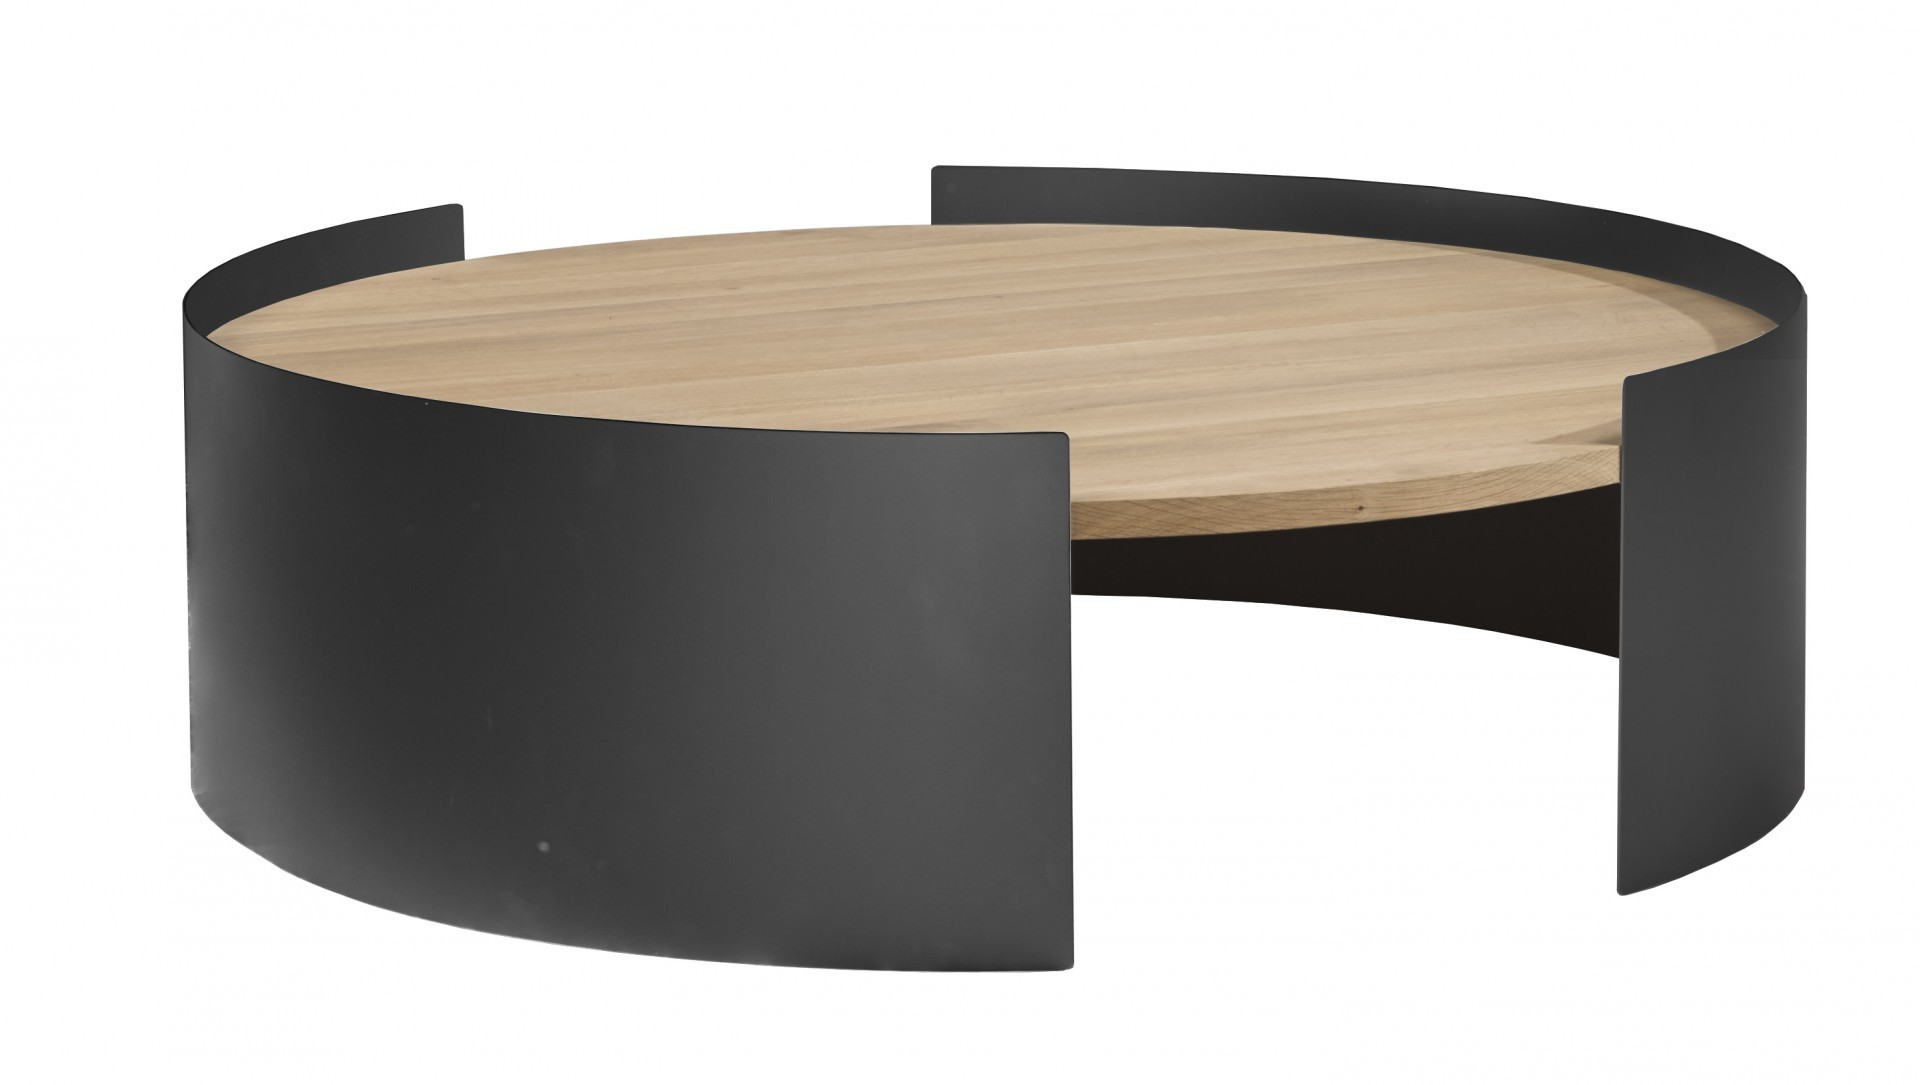 table_basse_moon_de_universo_positivo_100_noir Meilleur De De Table Basse Scandinave La Redoute